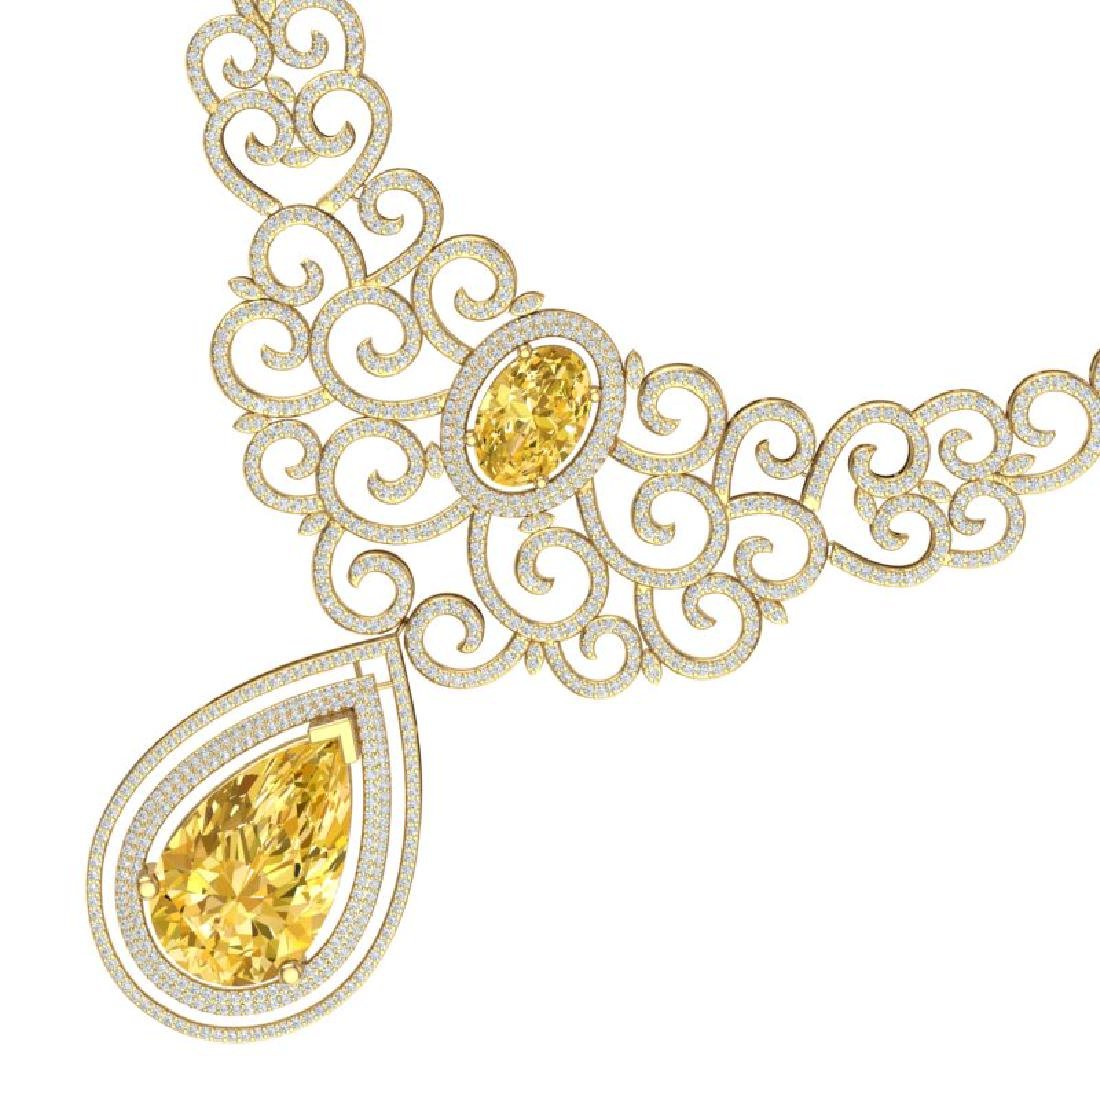 73.43 CTW Royalty Canary Citrine & VS Diamond Necklace